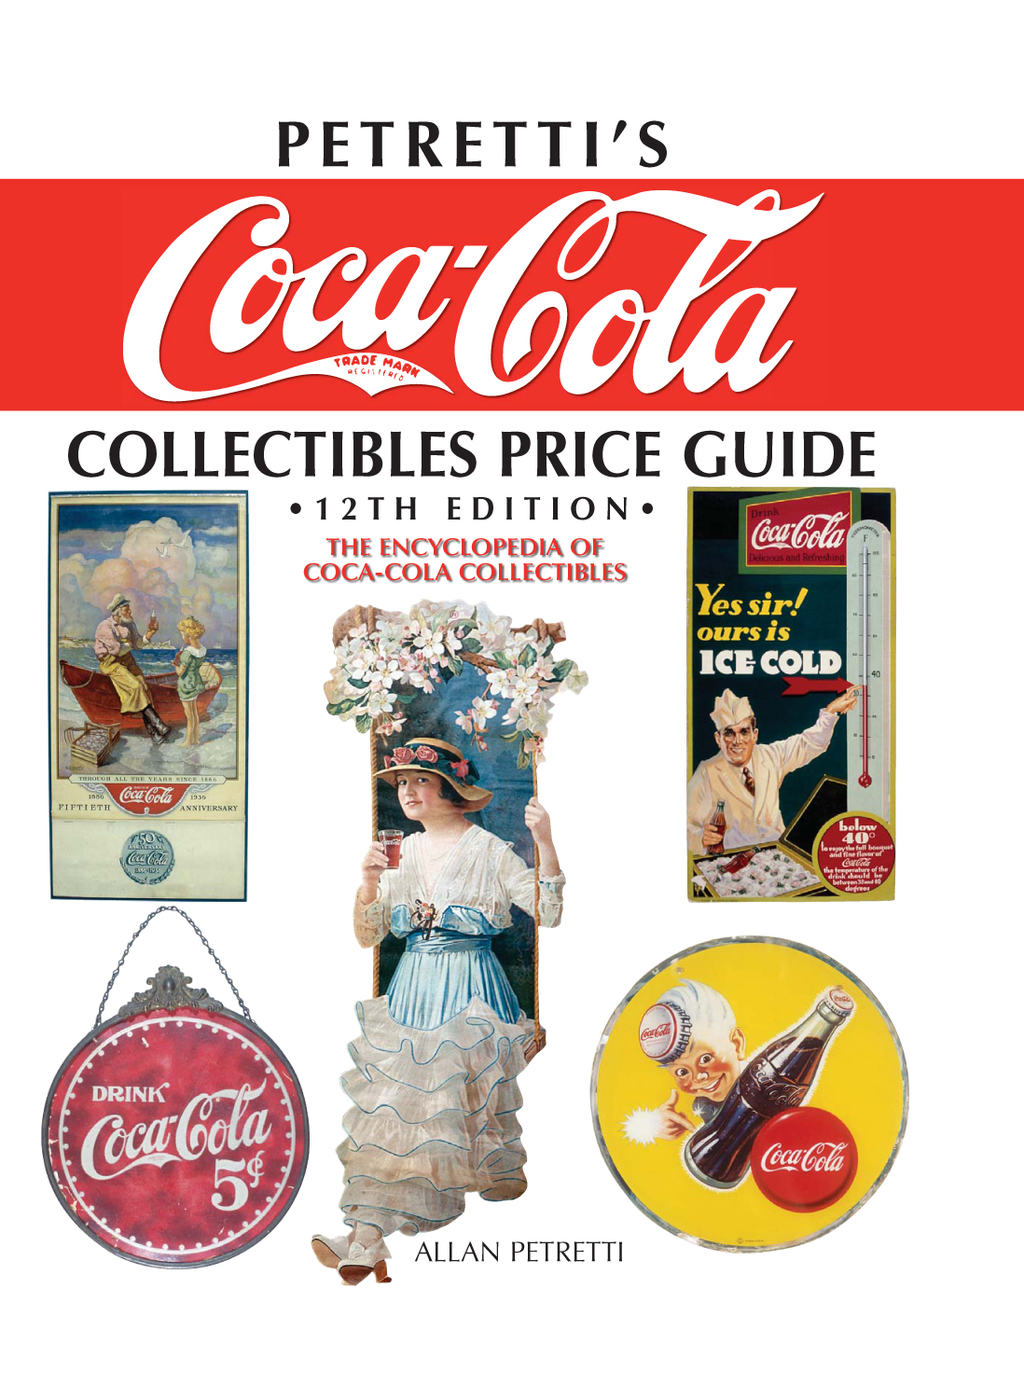 Petretti's Coca-Cola Collectibles Price Guide The Encyclopedia of Coca-Cola Collectibles